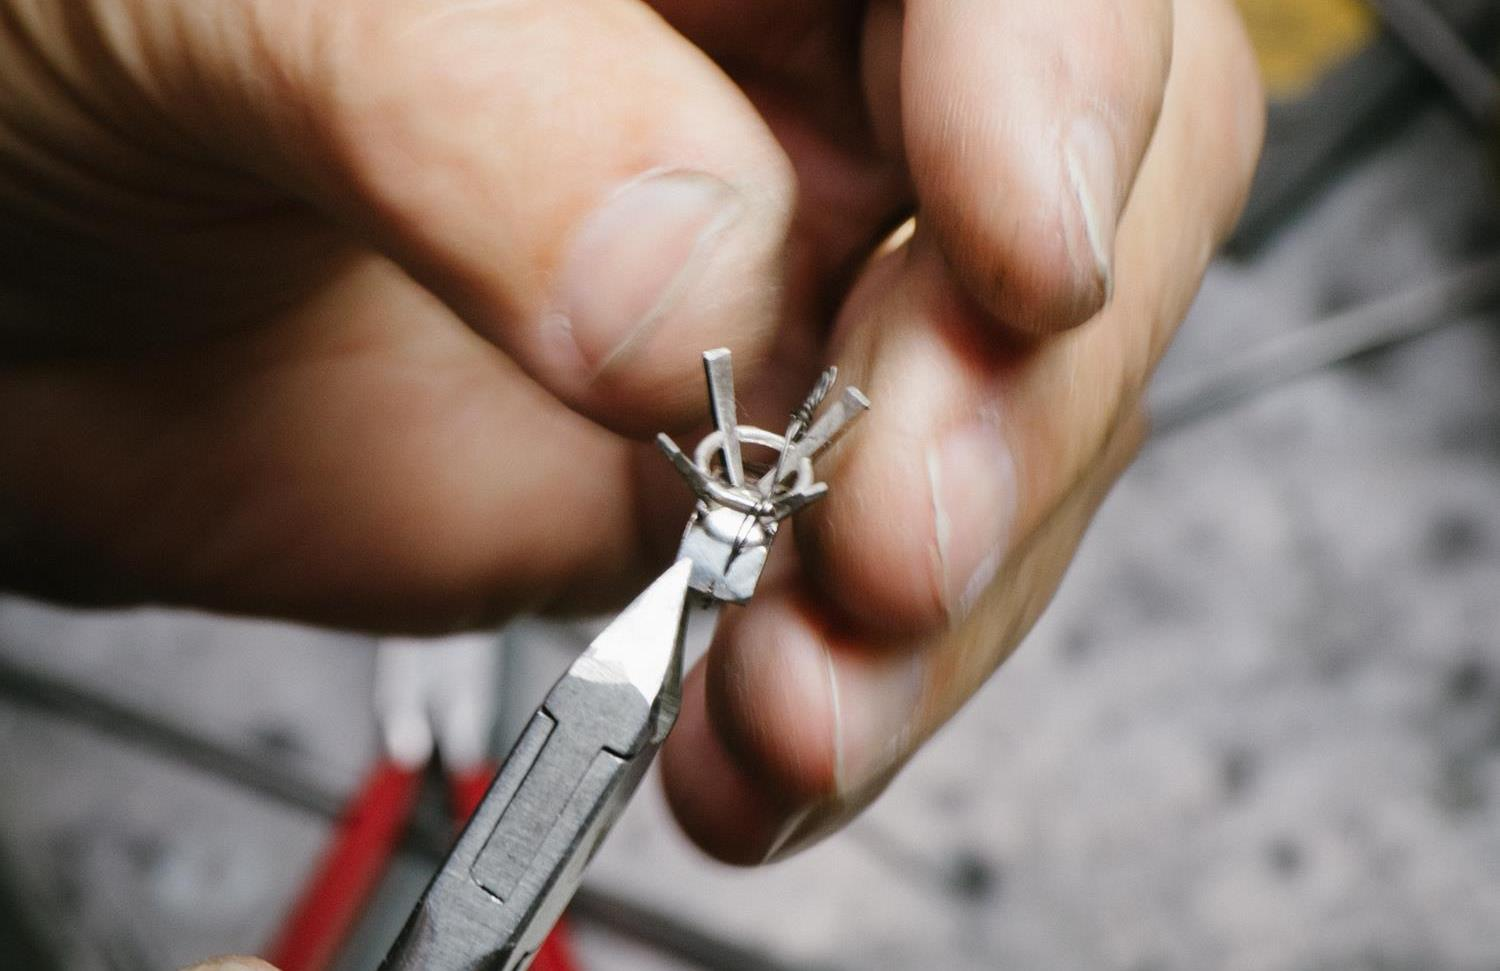 Pieces of wire are then cut to form various portions of the ring head. These are then attached to a plate at the bottom.